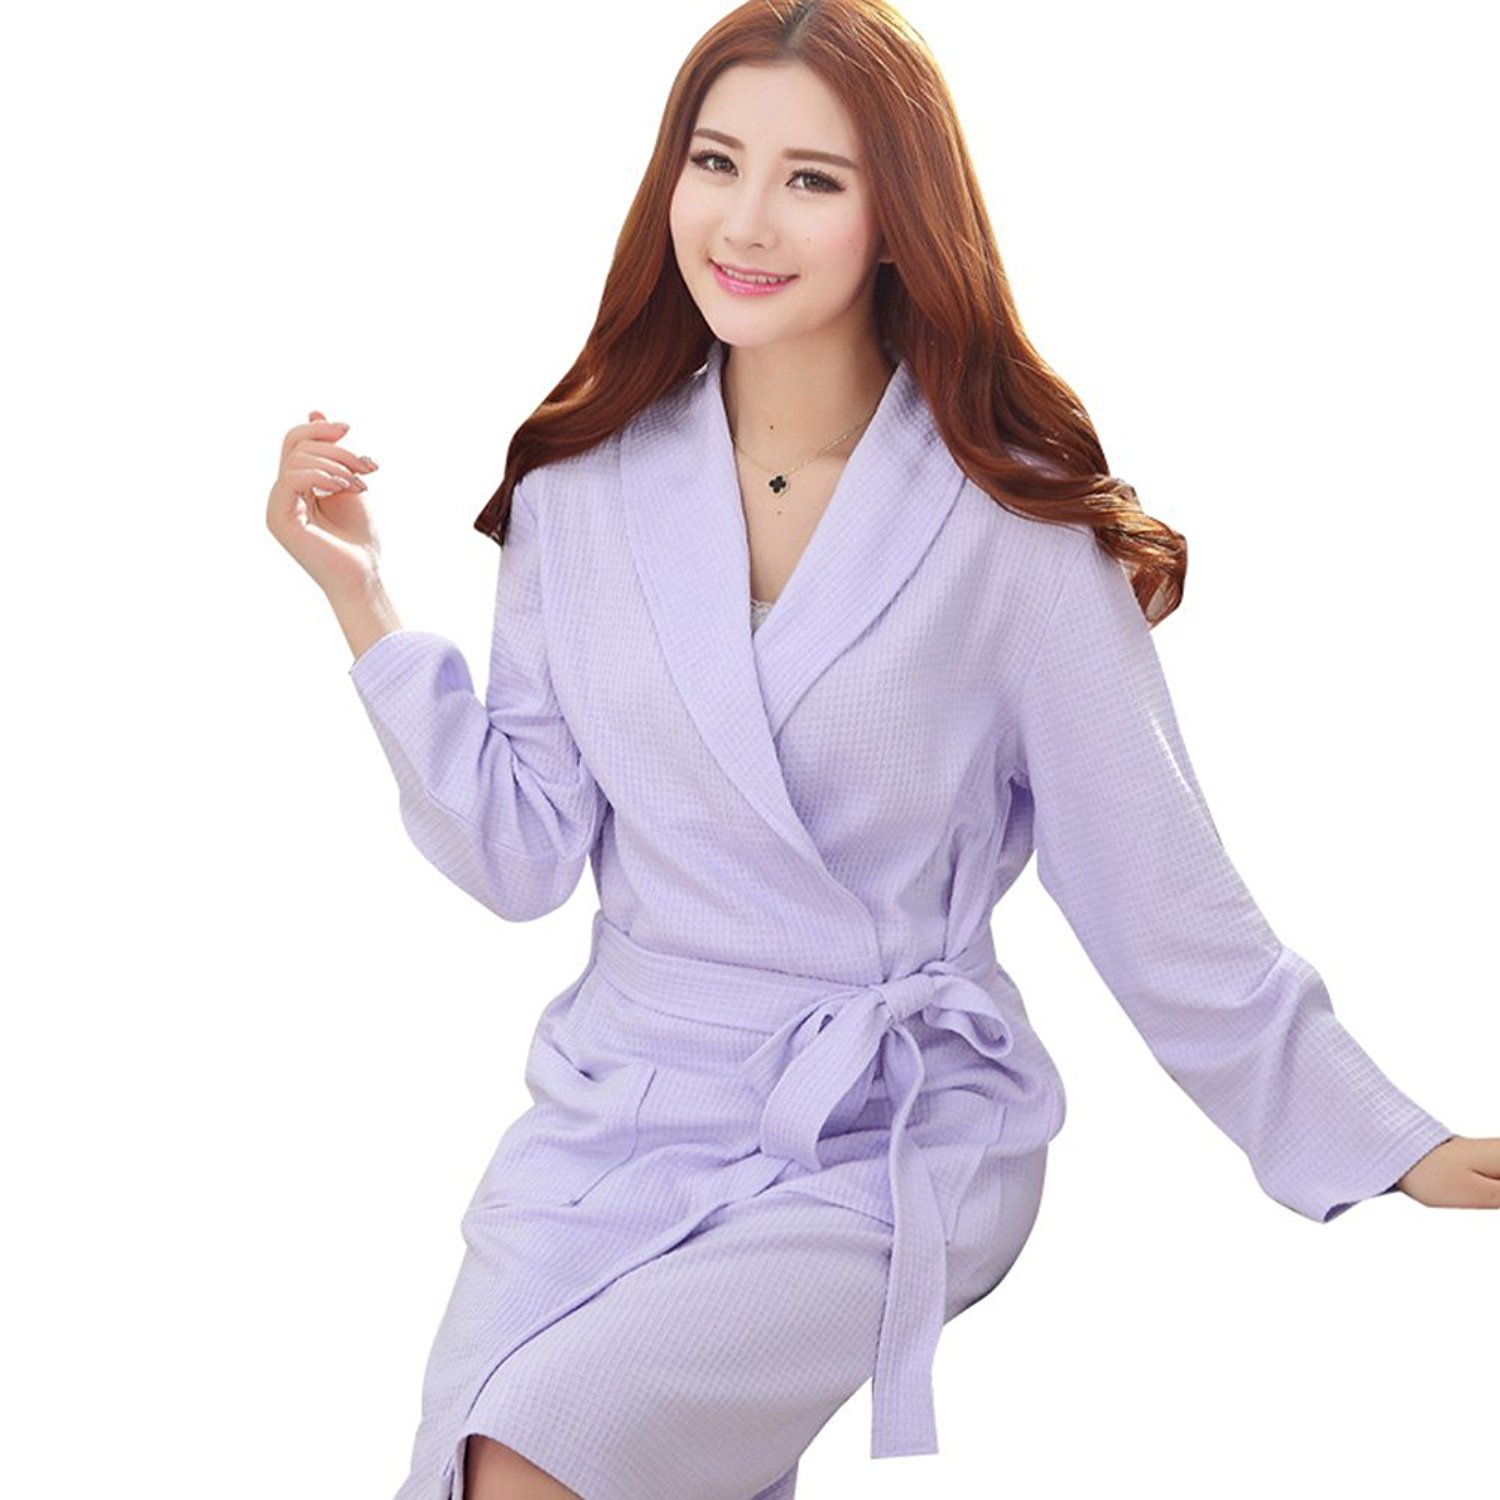 a66ca9187e Get Quotations · Fashionpjs Cotton Matching Couples Mens Womens Robe  Thermal Pajamas Long Bathrobe